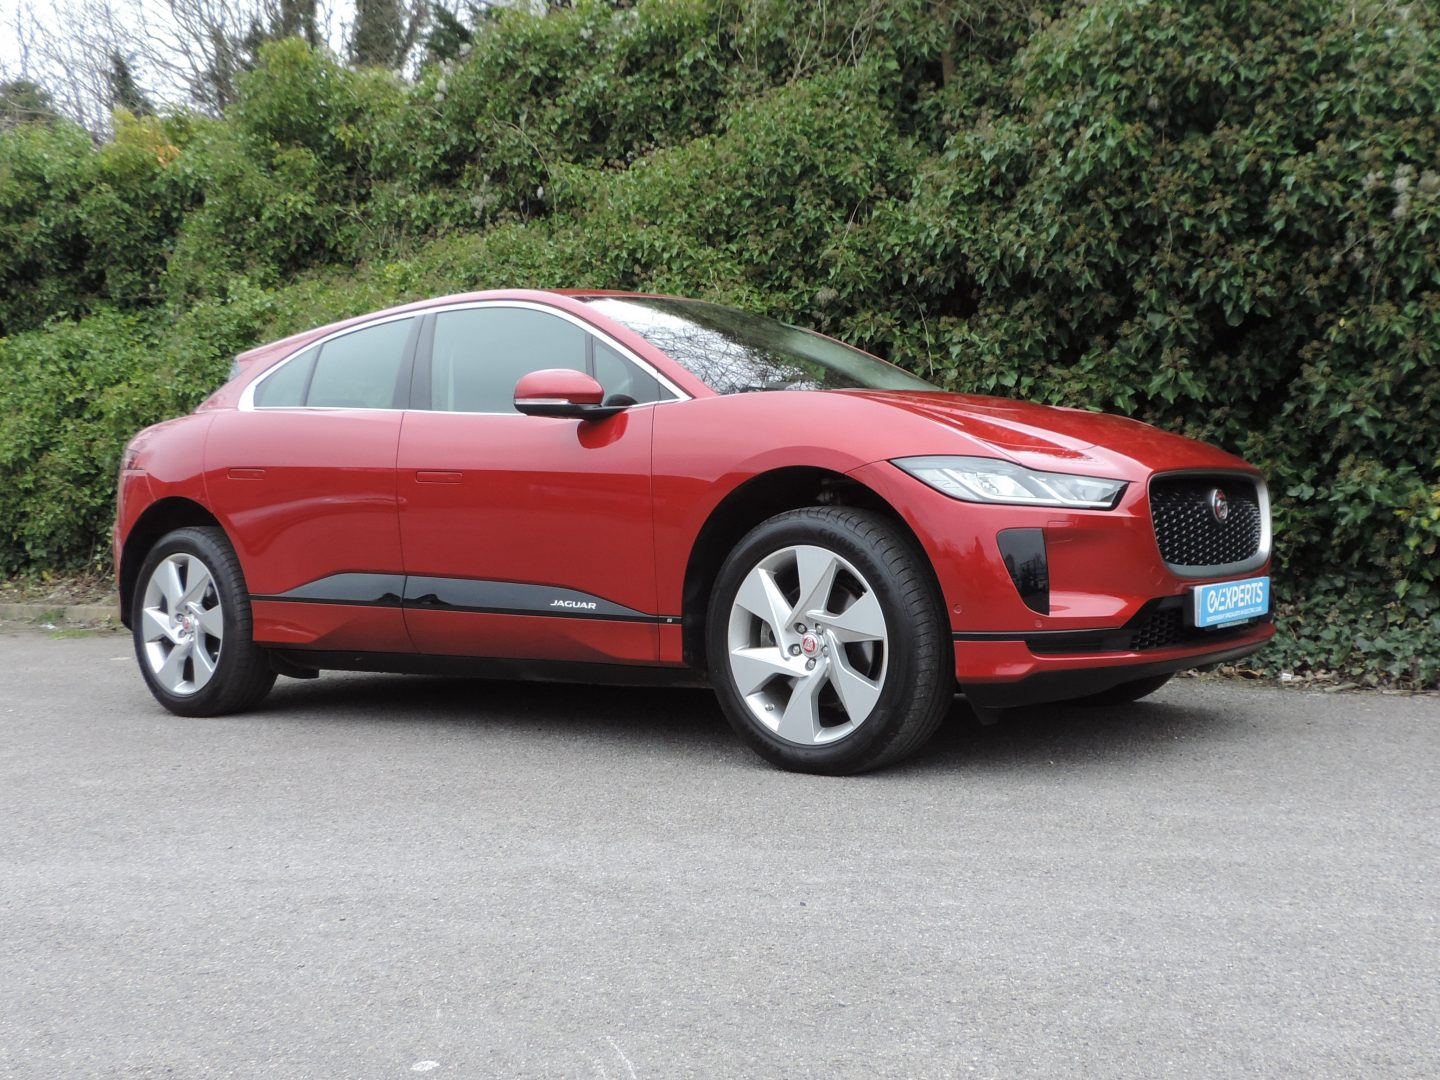 Jaguar I-Pace 90kWh S (2019) Firenze Red / Ebony leather